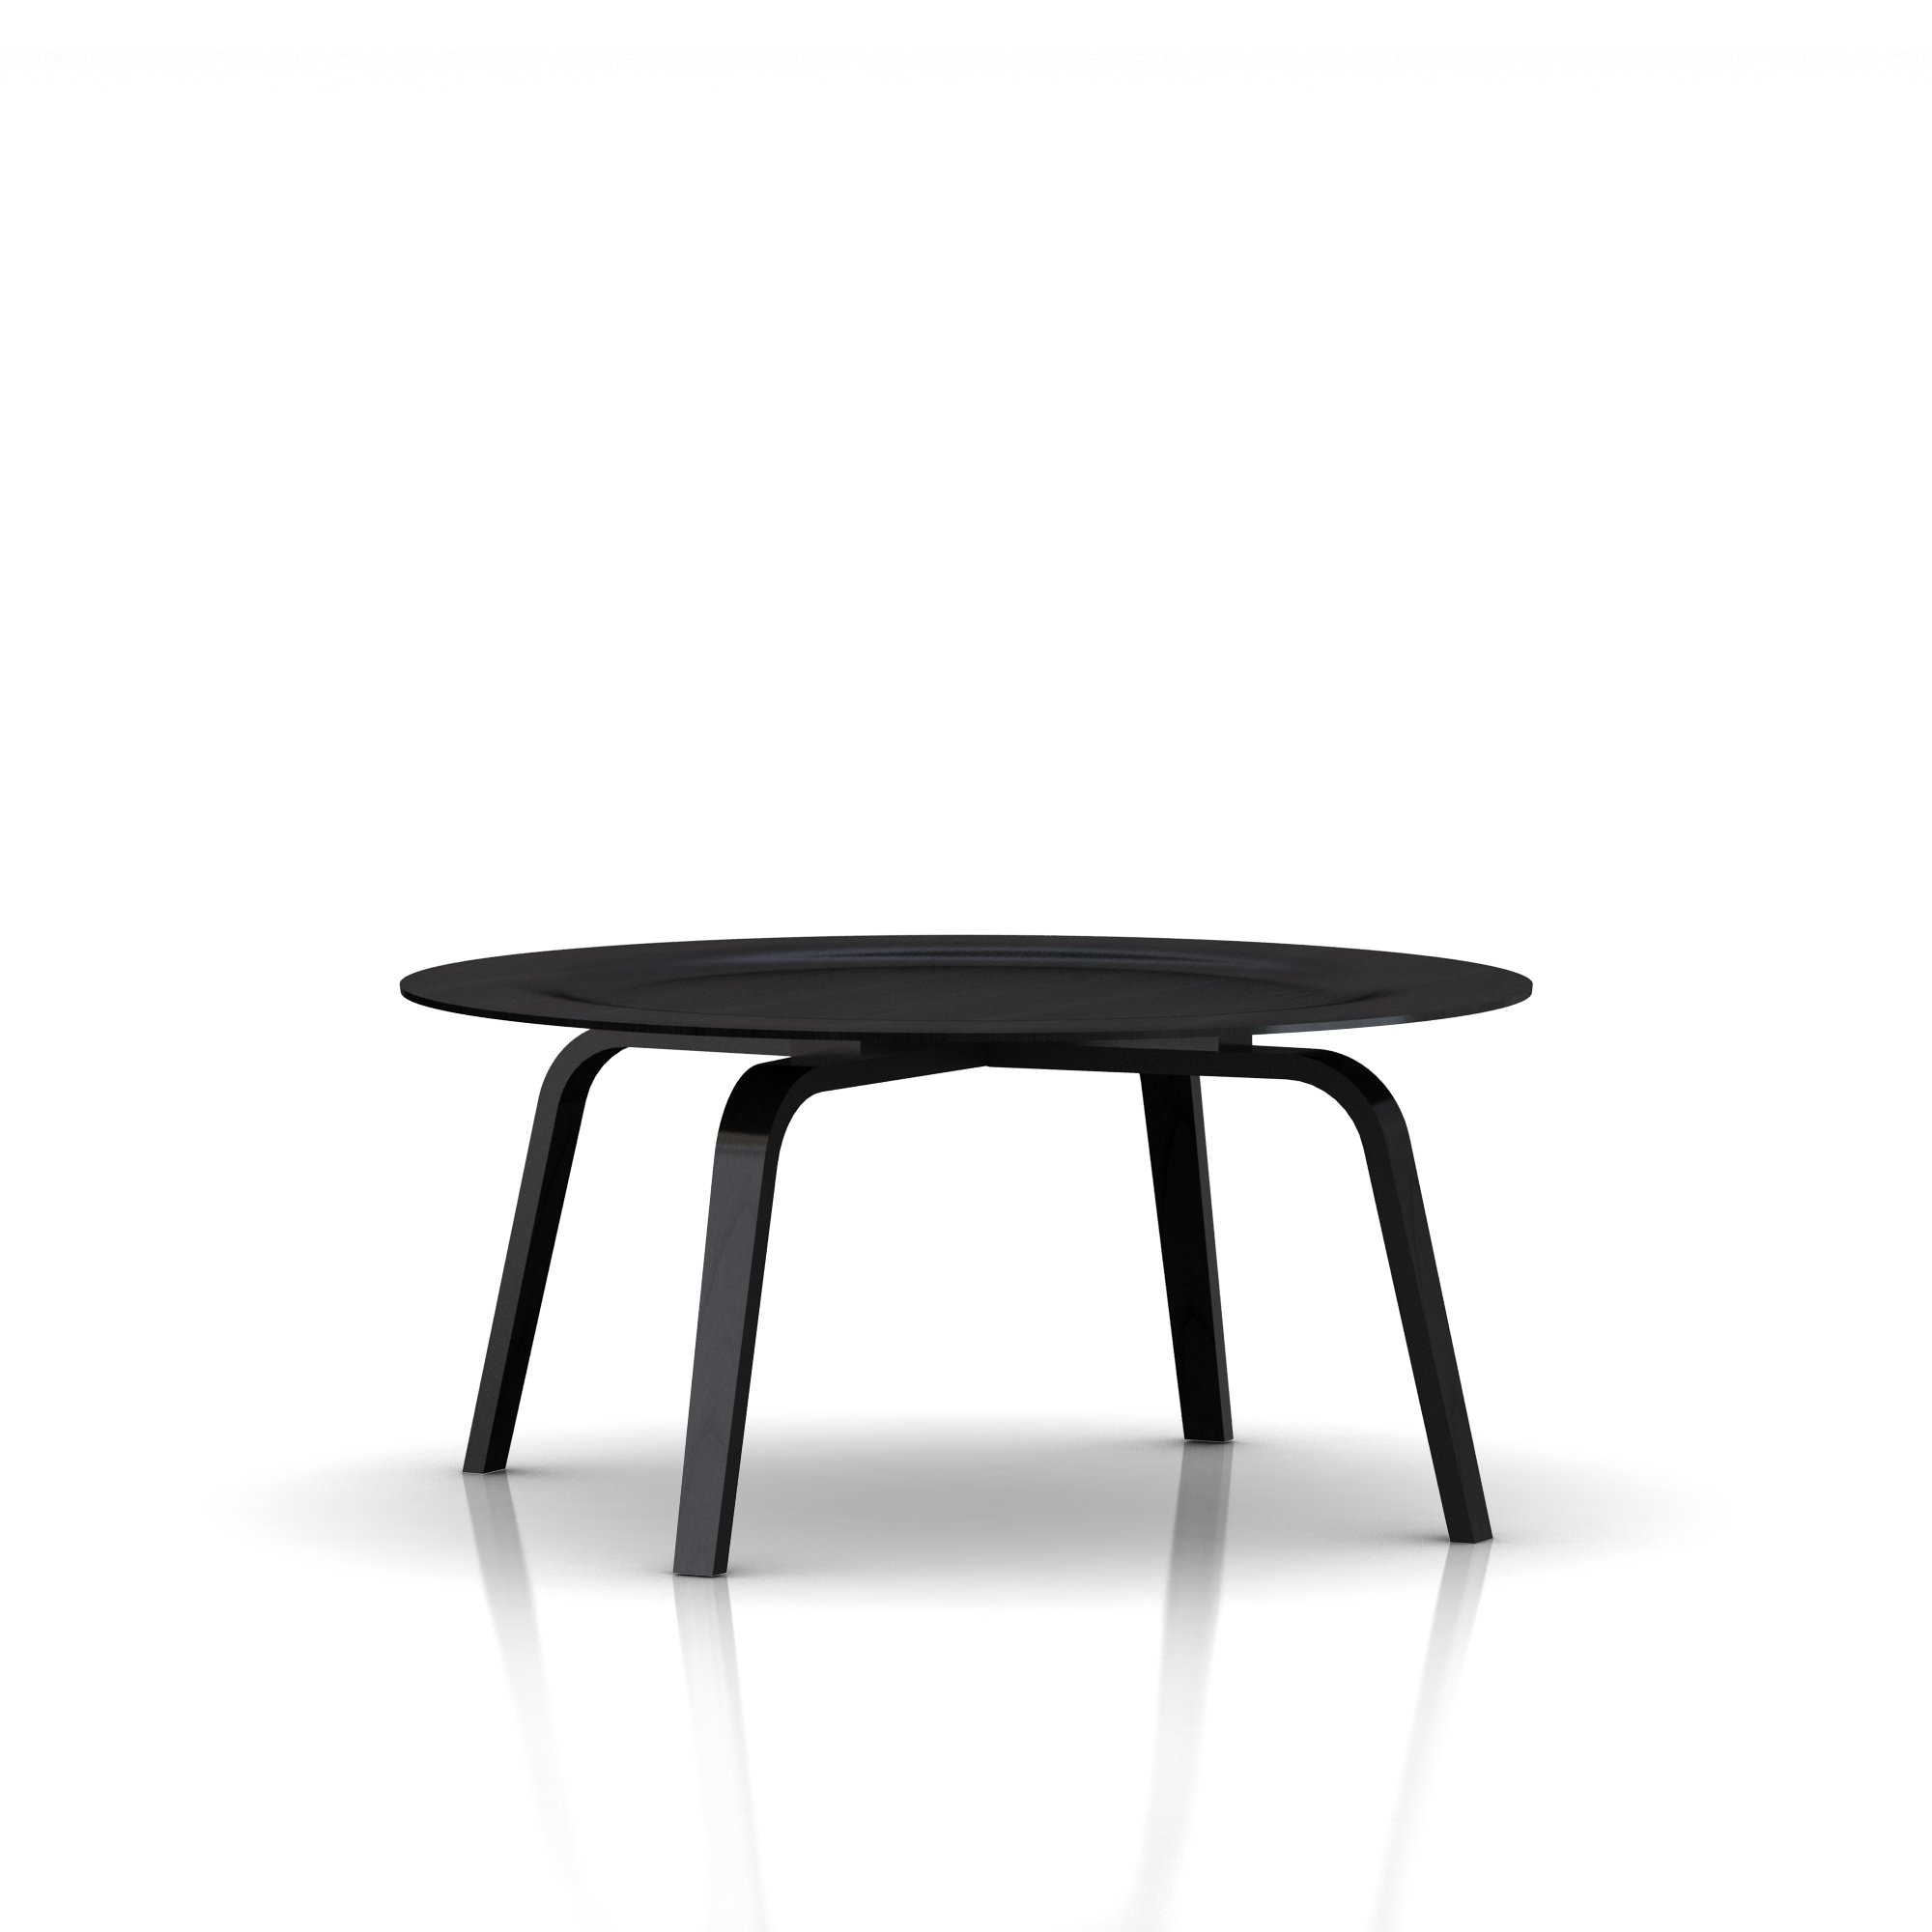 Eames Molded Plywood Coffee Table Wood Base - Item3